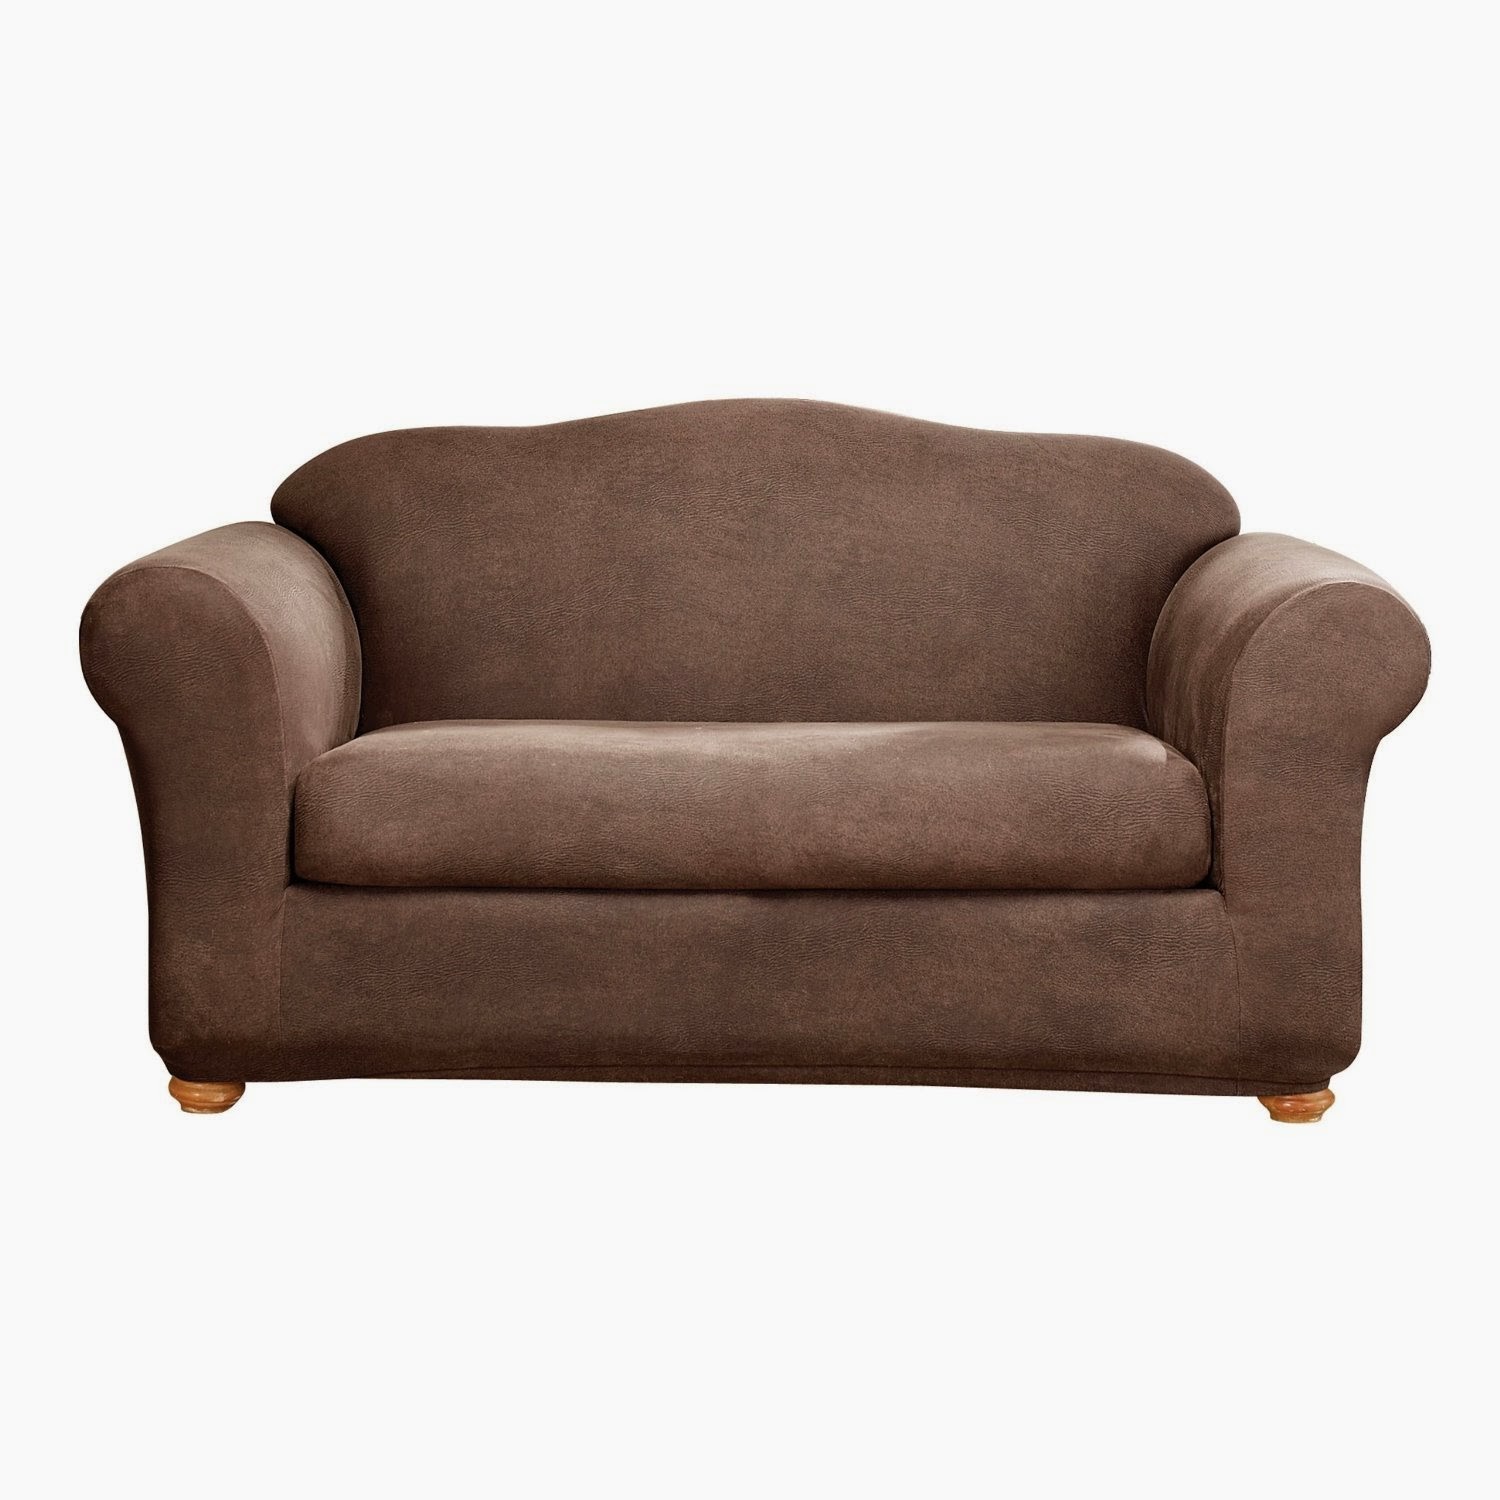 Best Sofa Covers For Leather Sofas Height Of A Table Couch